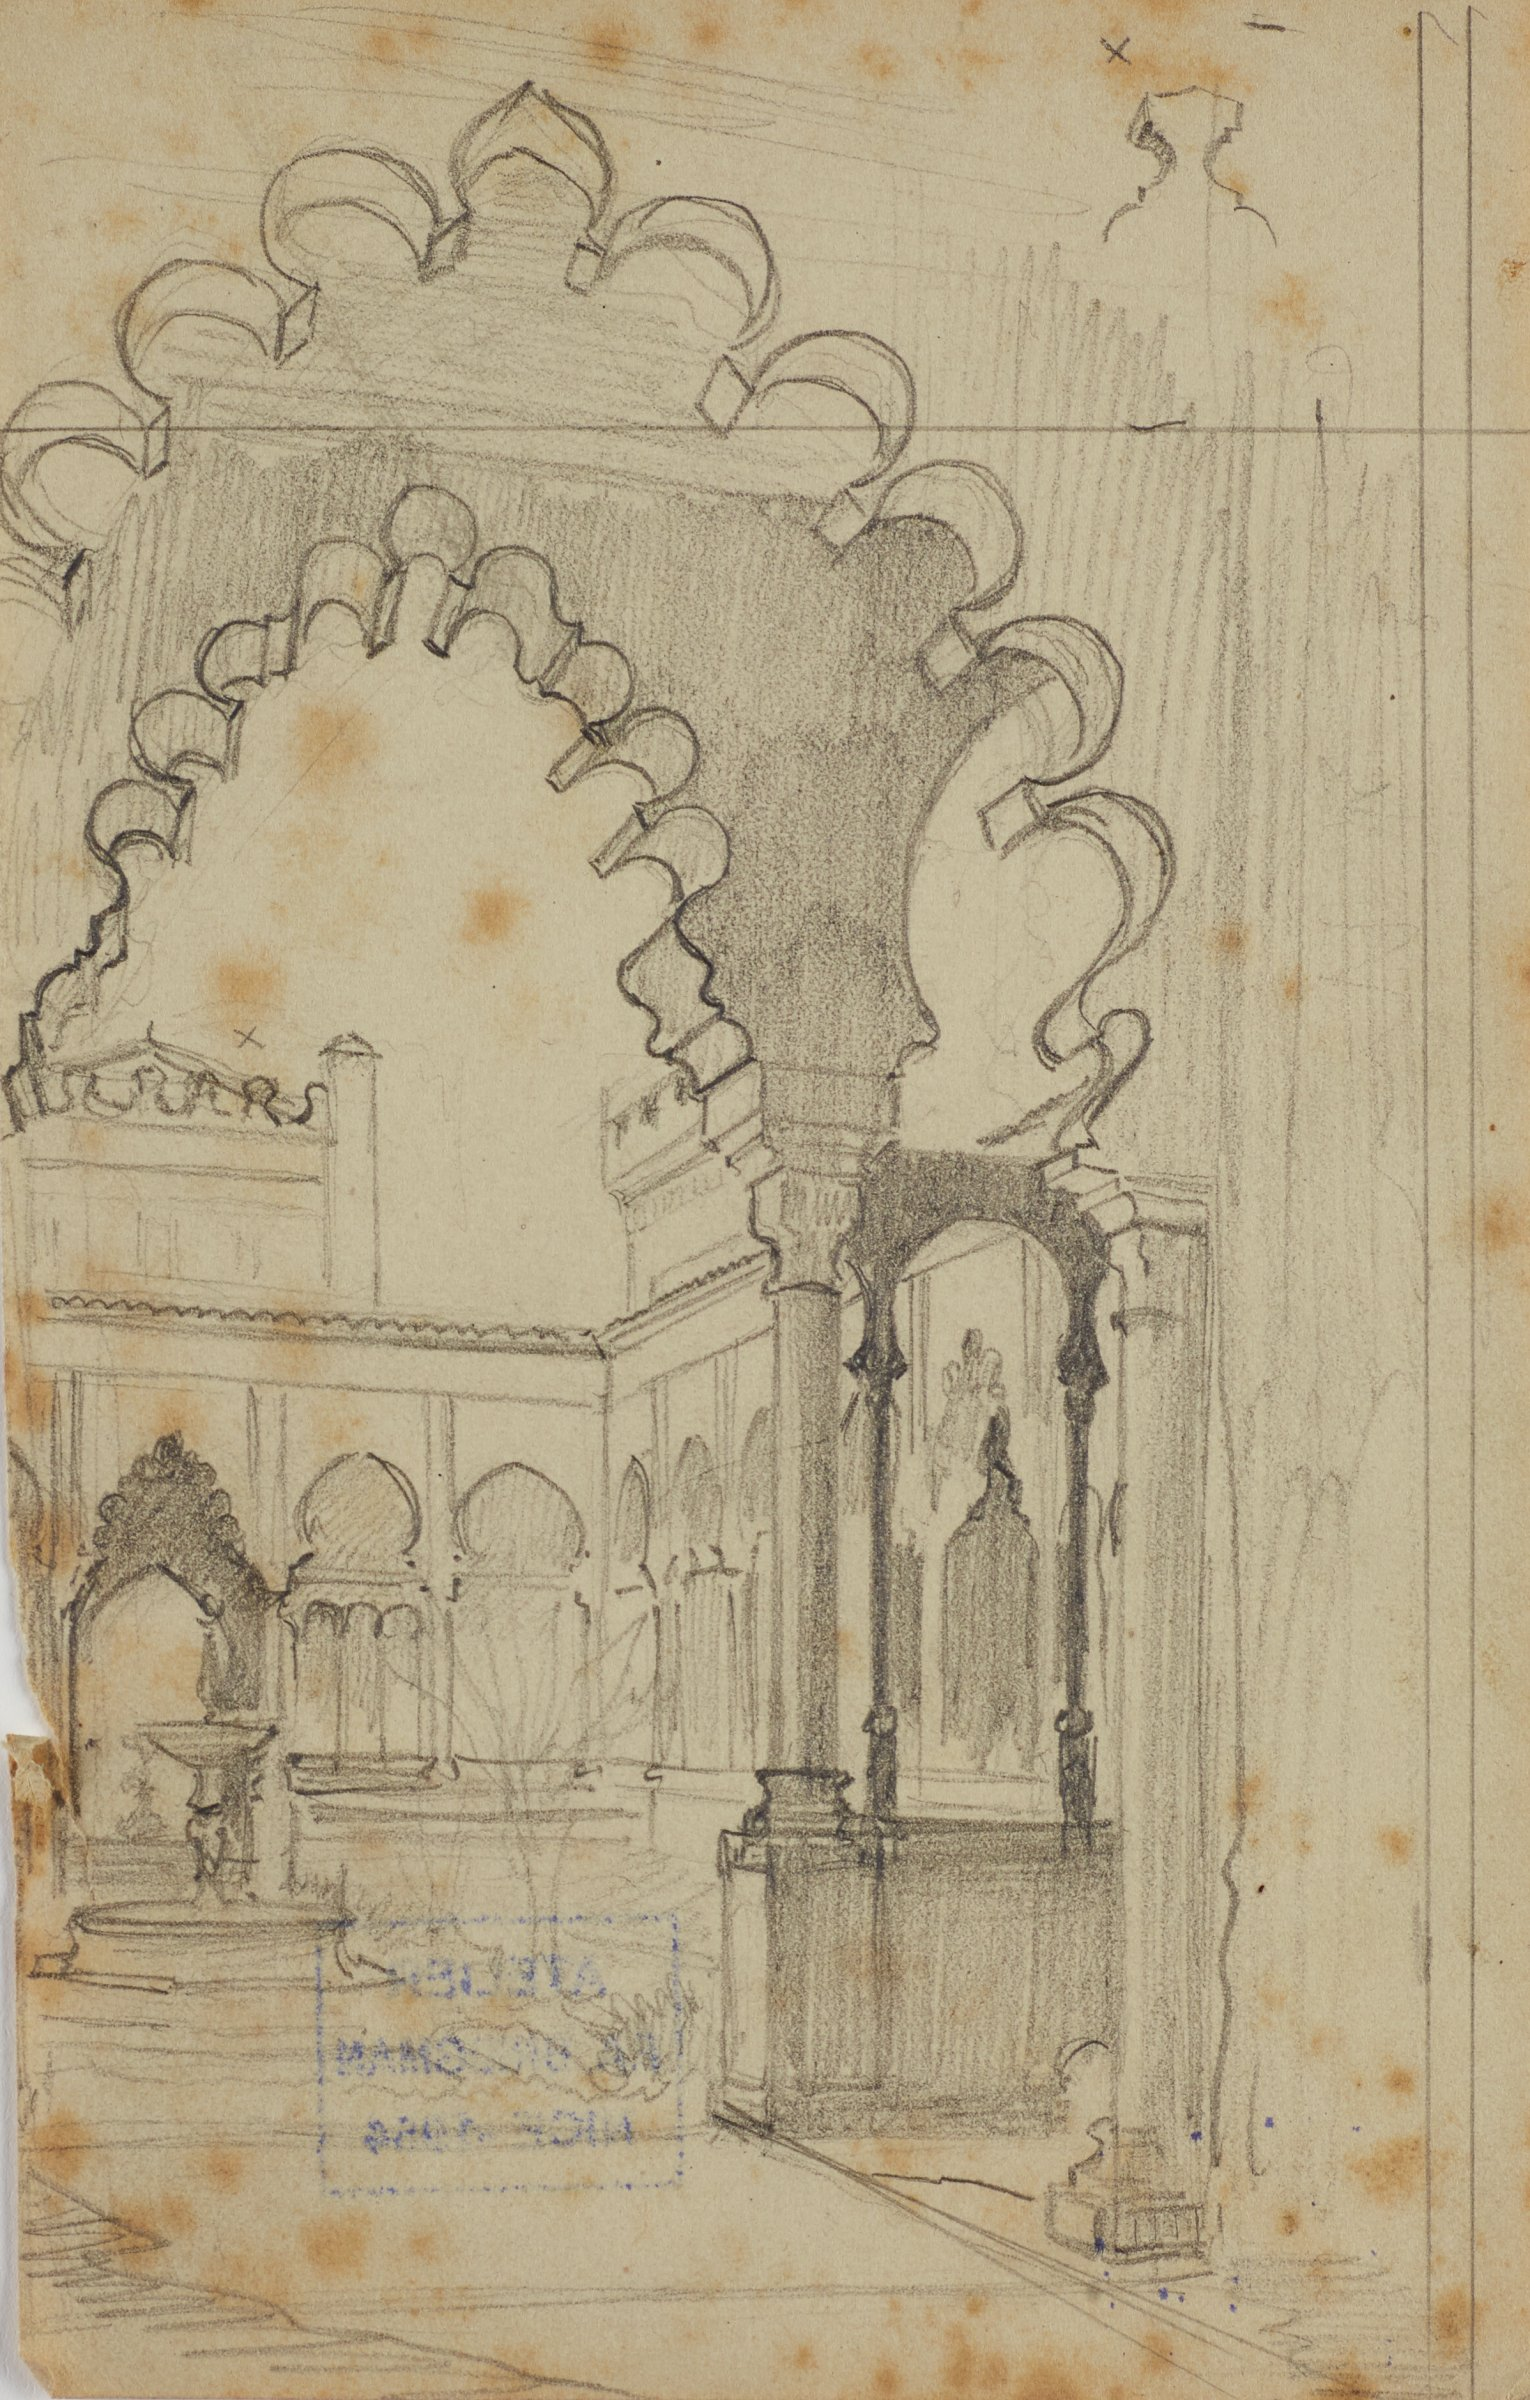 Untitled (Moorish Architectural Scene), Frederic Arthur Bridgman, graphite on paper